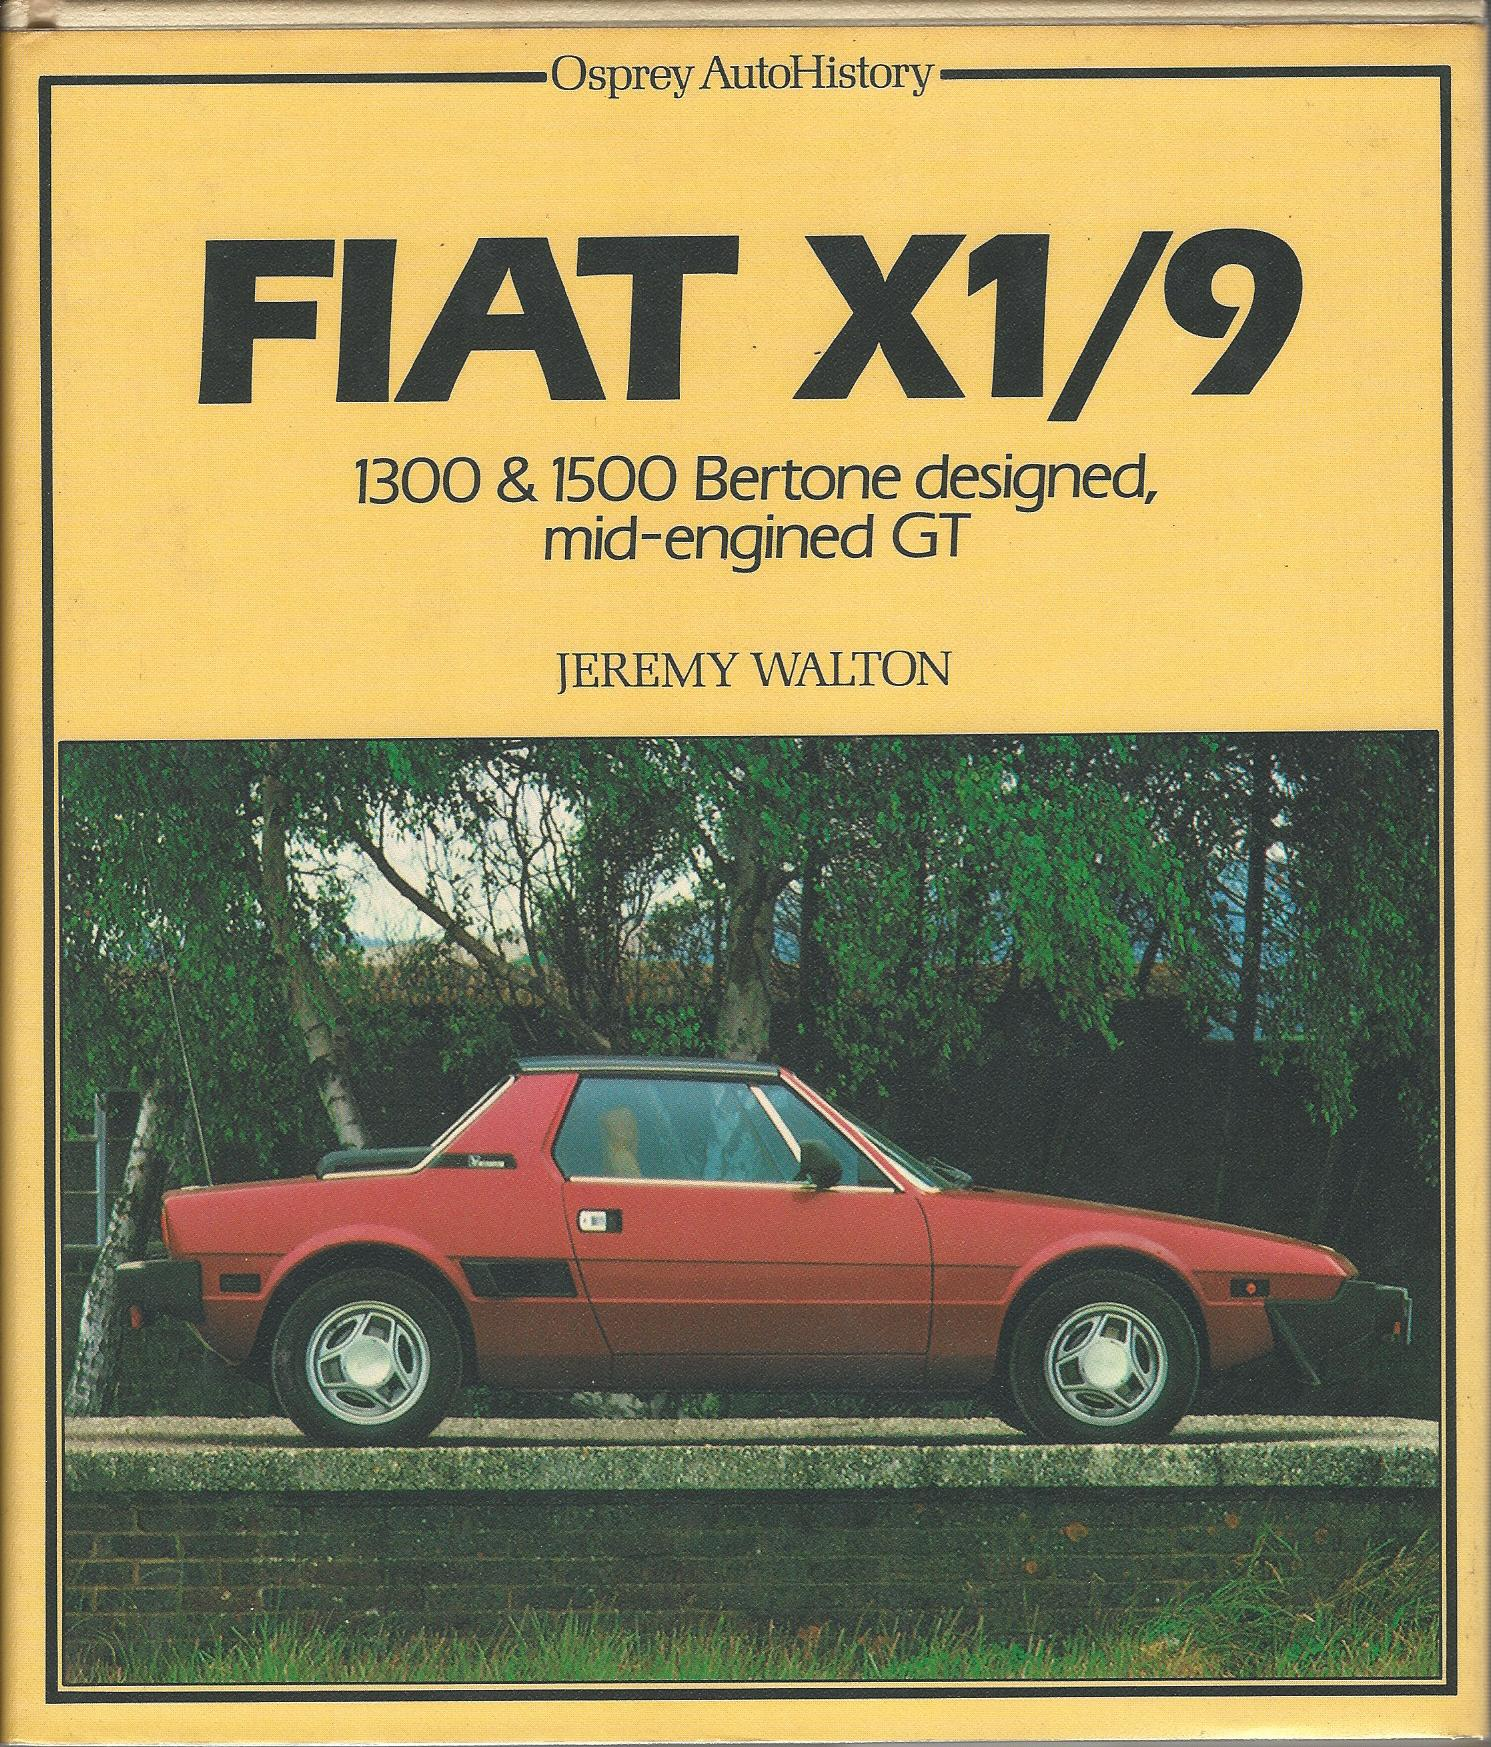 Image for Fiat X1/9- 1300 & 1500 Bertone Designed, mid-engined GT. (Osprey autohistory)